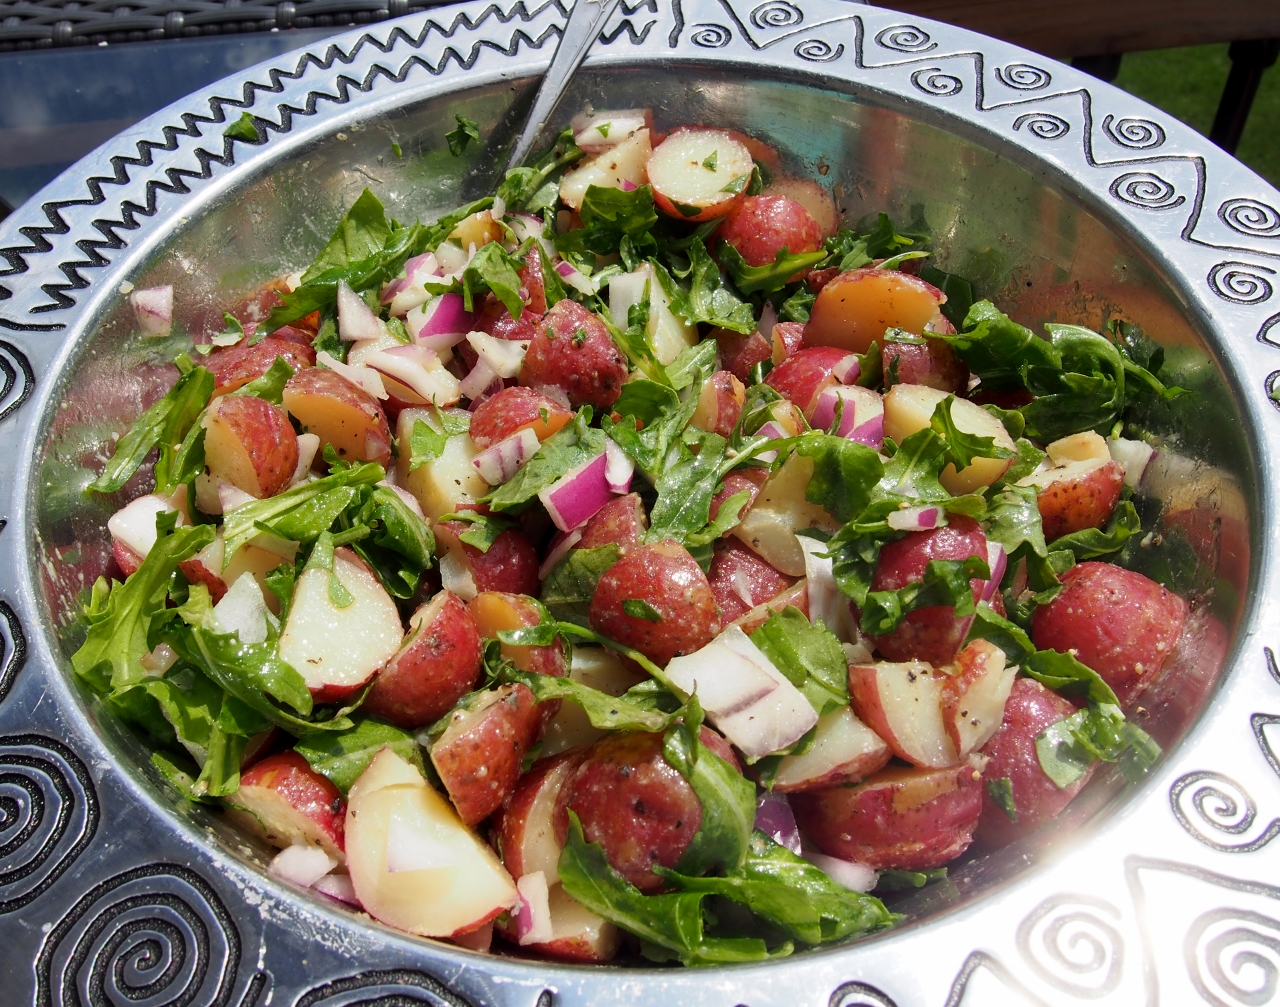 New Potato Salad With Arugula And Dijon Vinaigrette